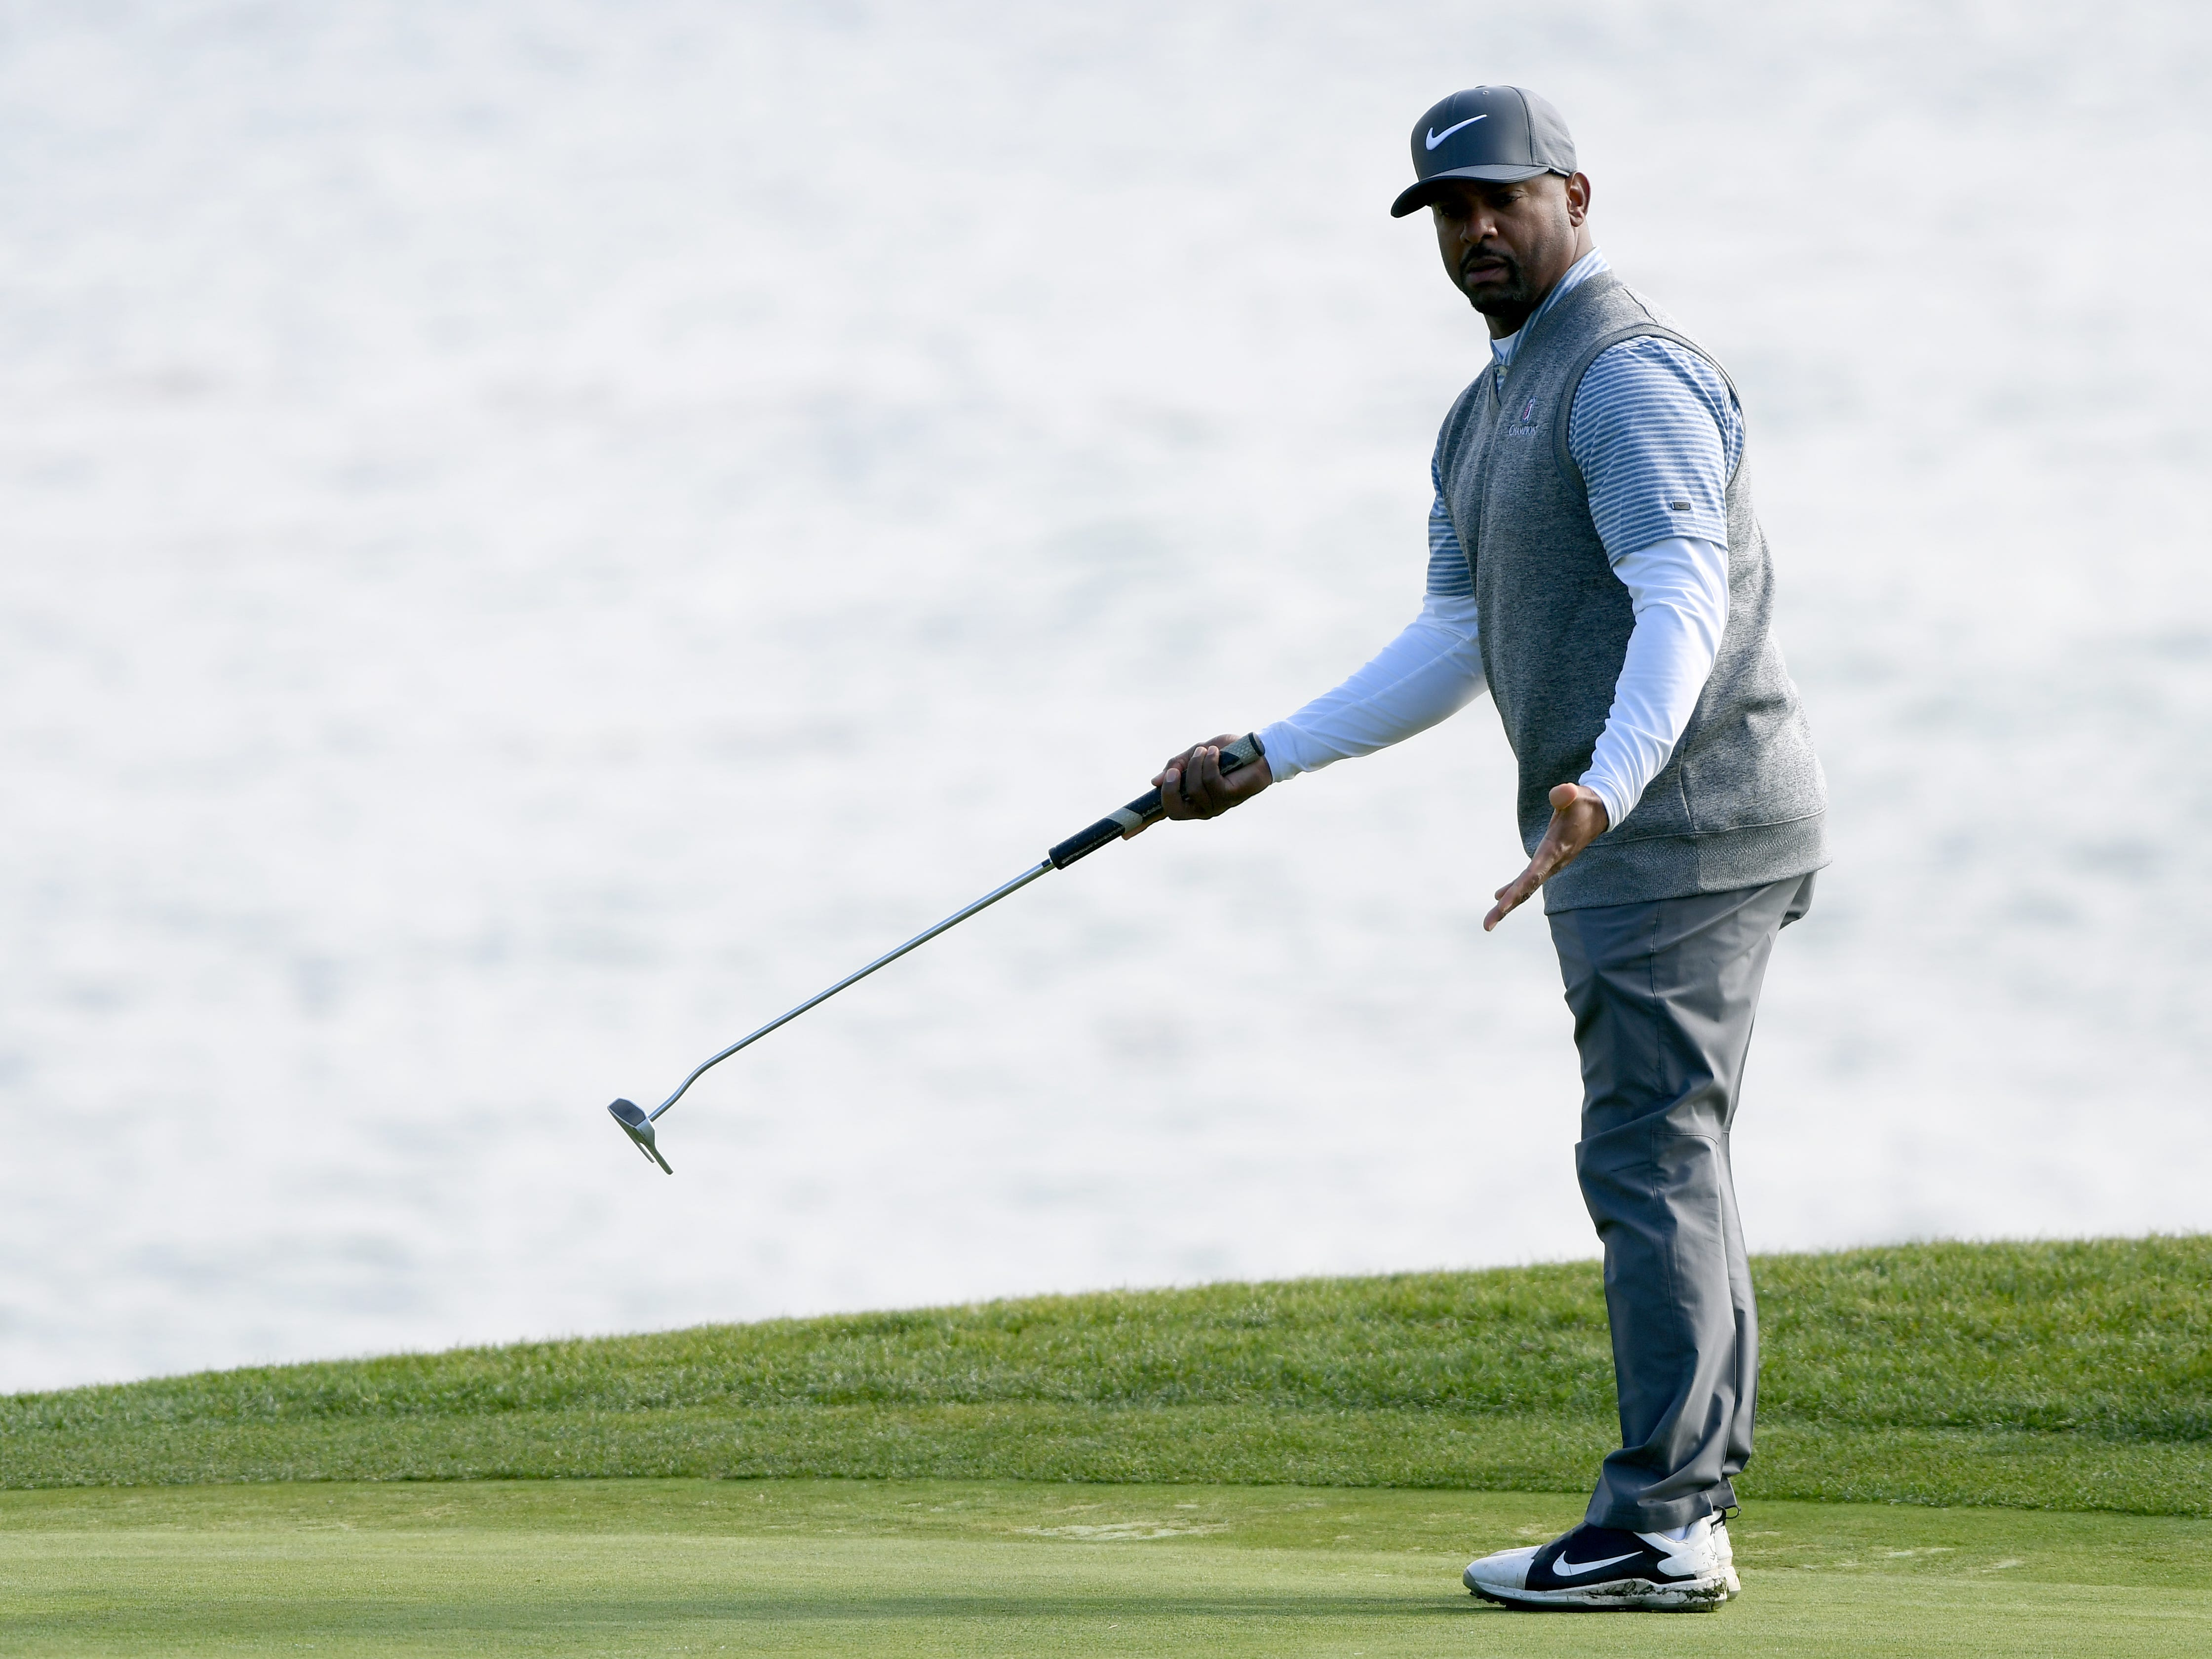 Alfonso Ribeiro reacts to his missed putt on the 18th green during the 3M Celebrity Challenge at the AT&T Pebble Beach Pro-Am.